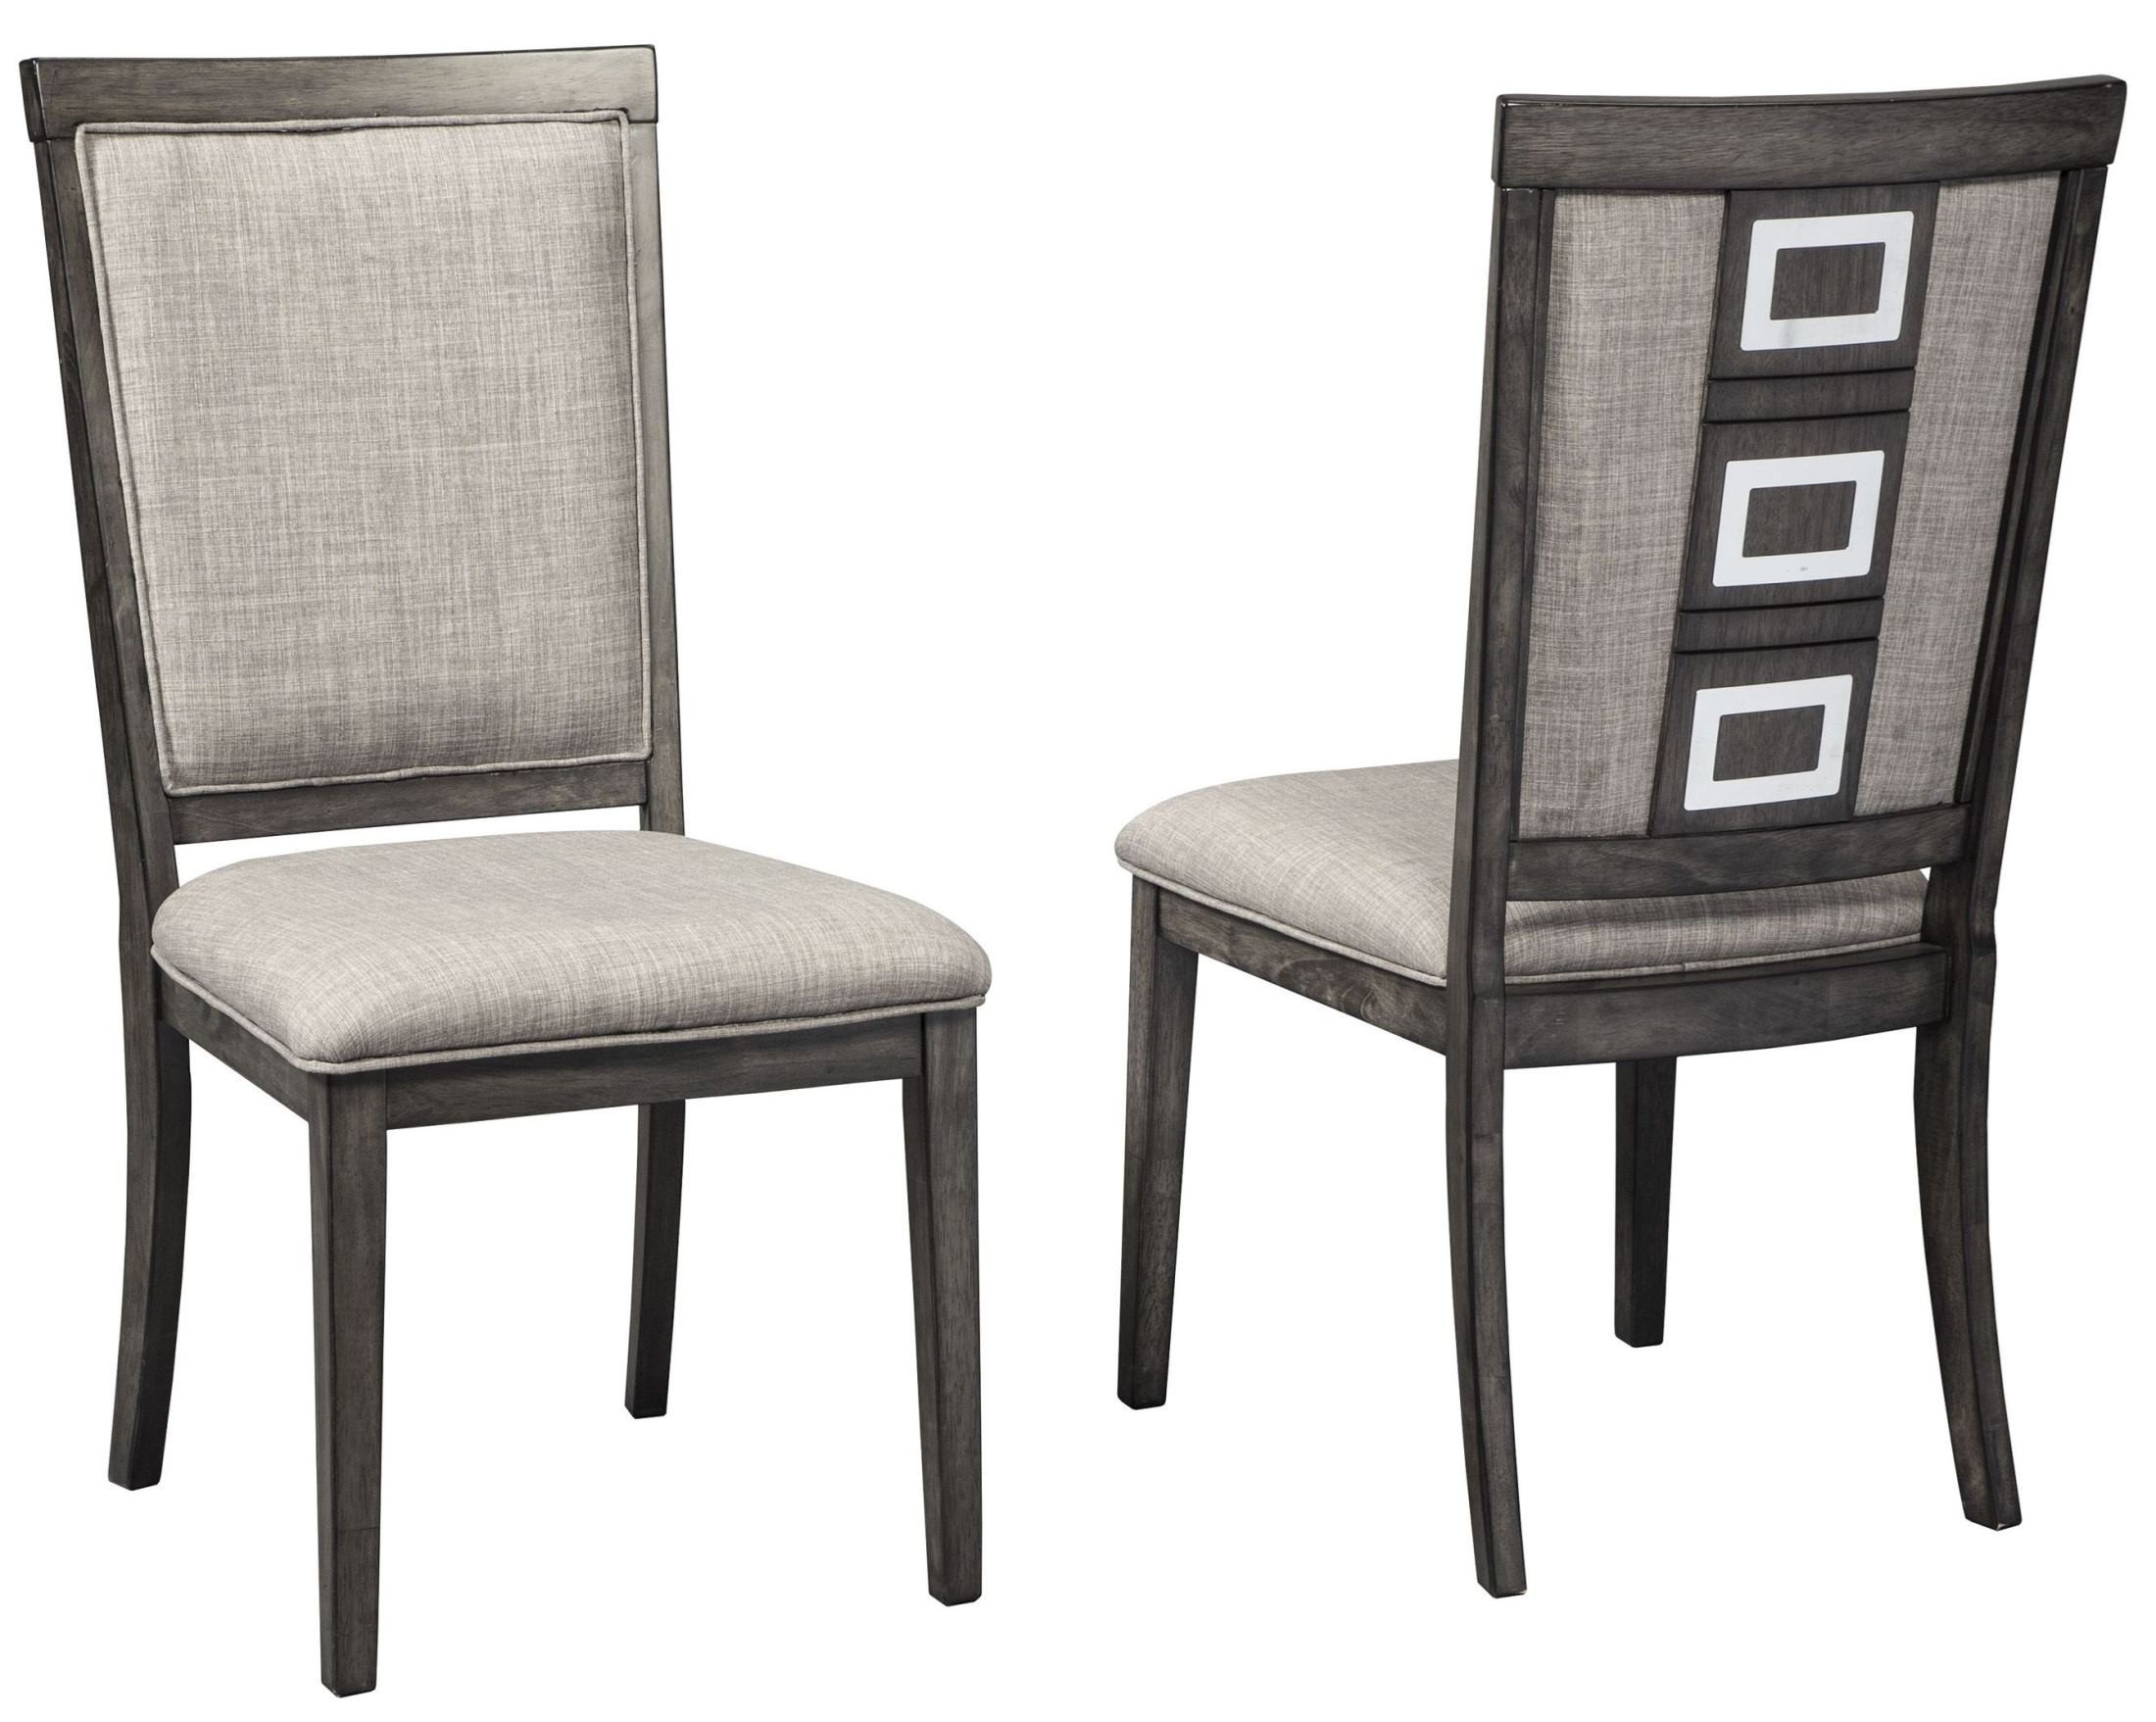 Grey Upholstered Chair Chadoni Gray Upholstered Side Chair Set Of 2 From Ashley